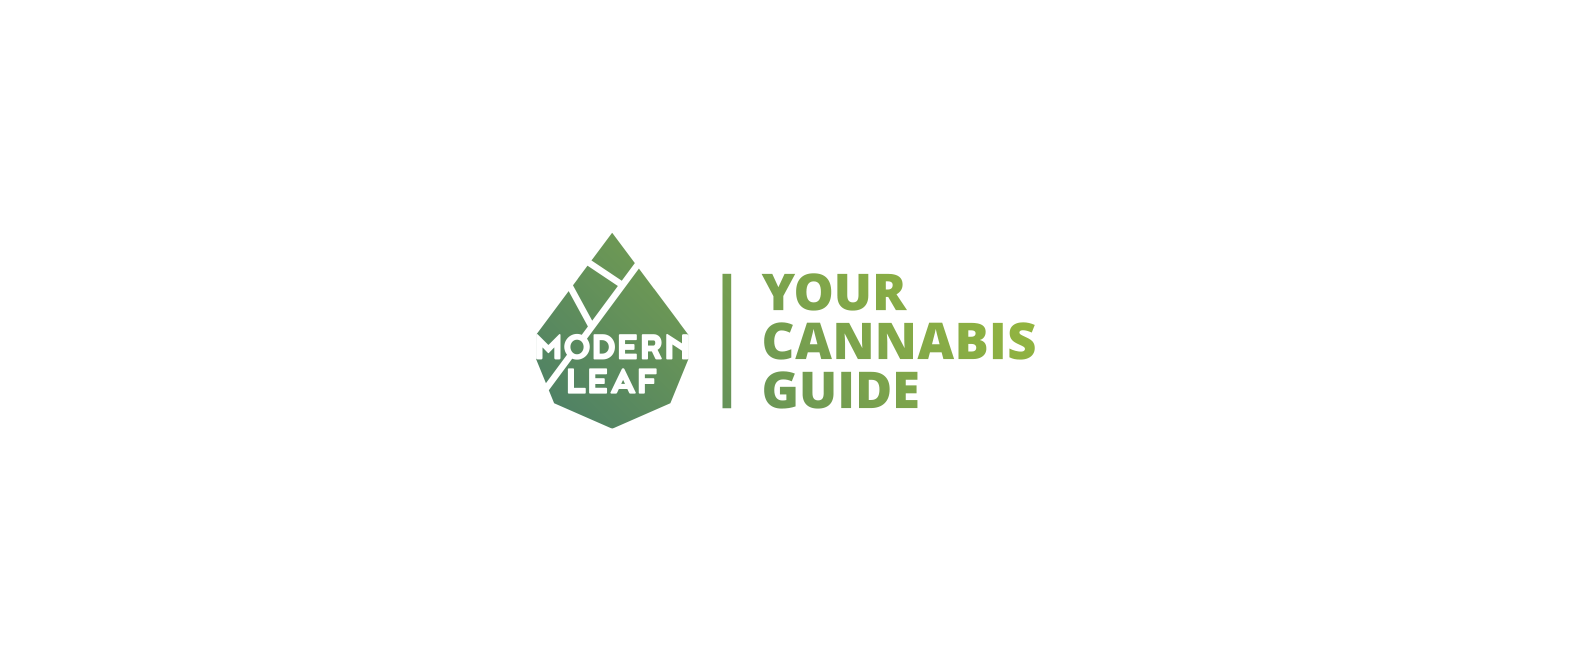 How to build a cannabis brand